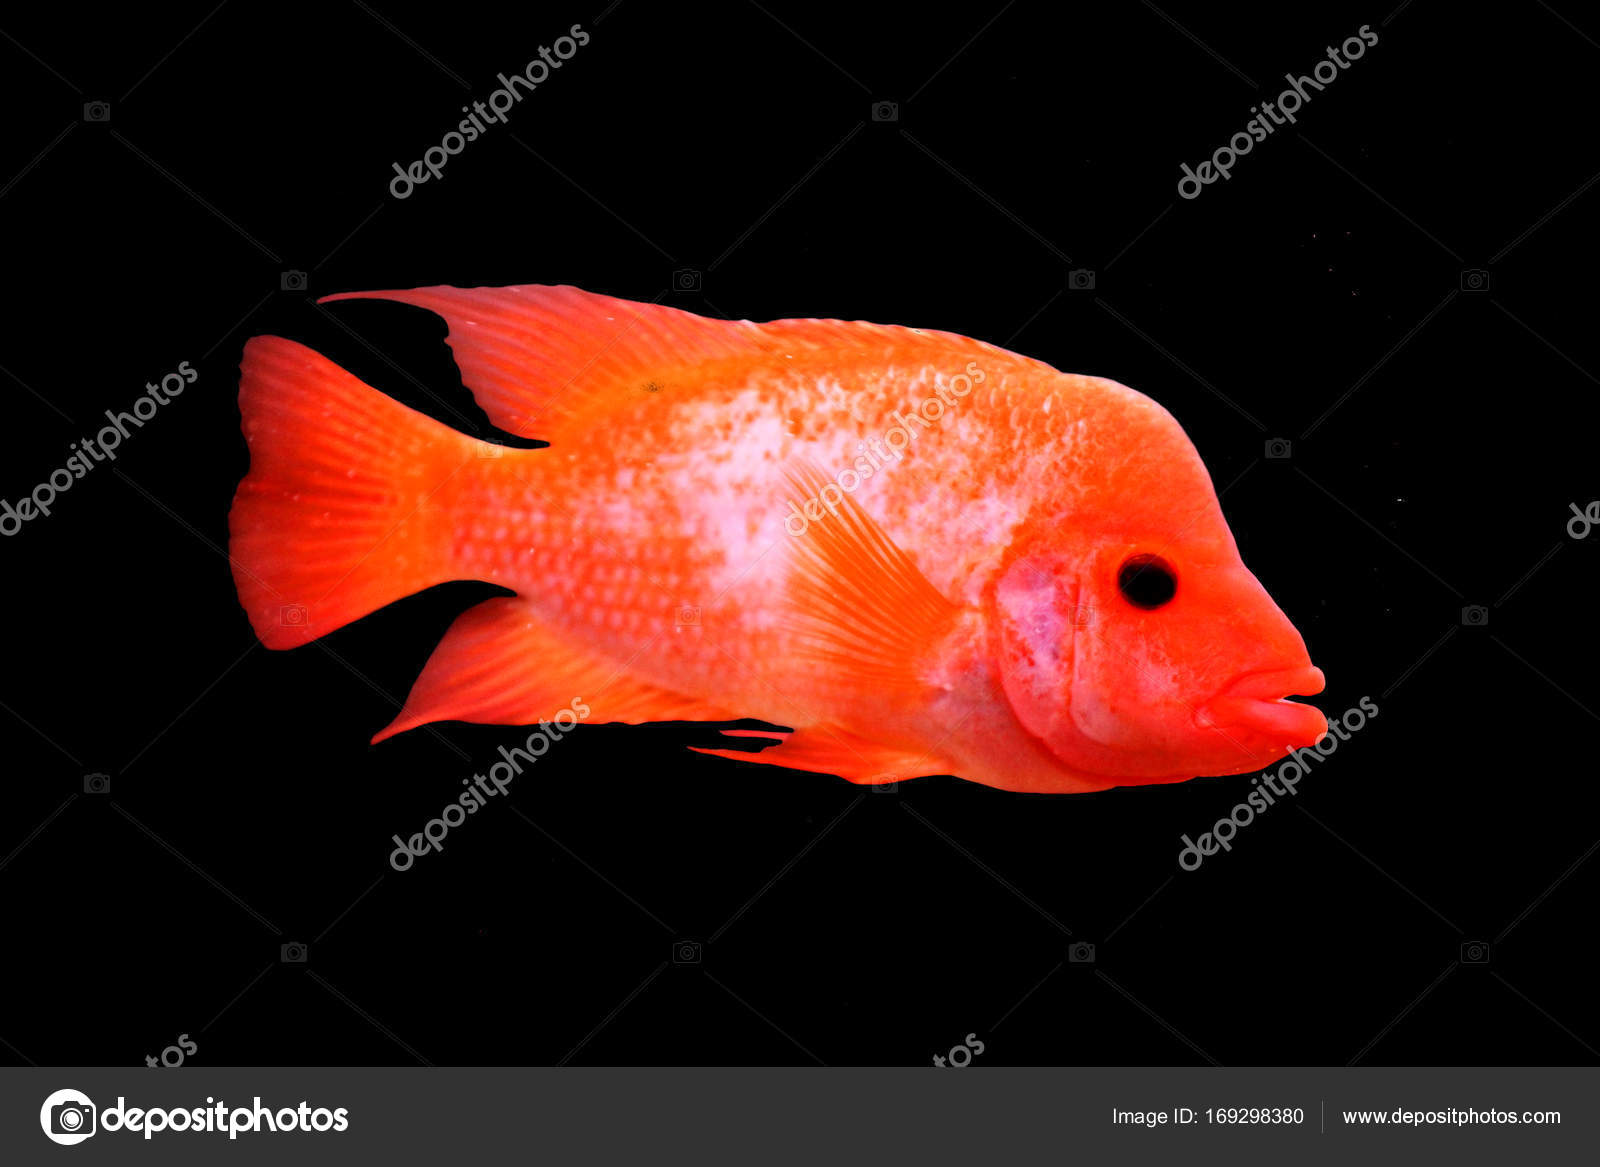 multi colored sea small fish — Stock Photo © vero_ro39 #169298380